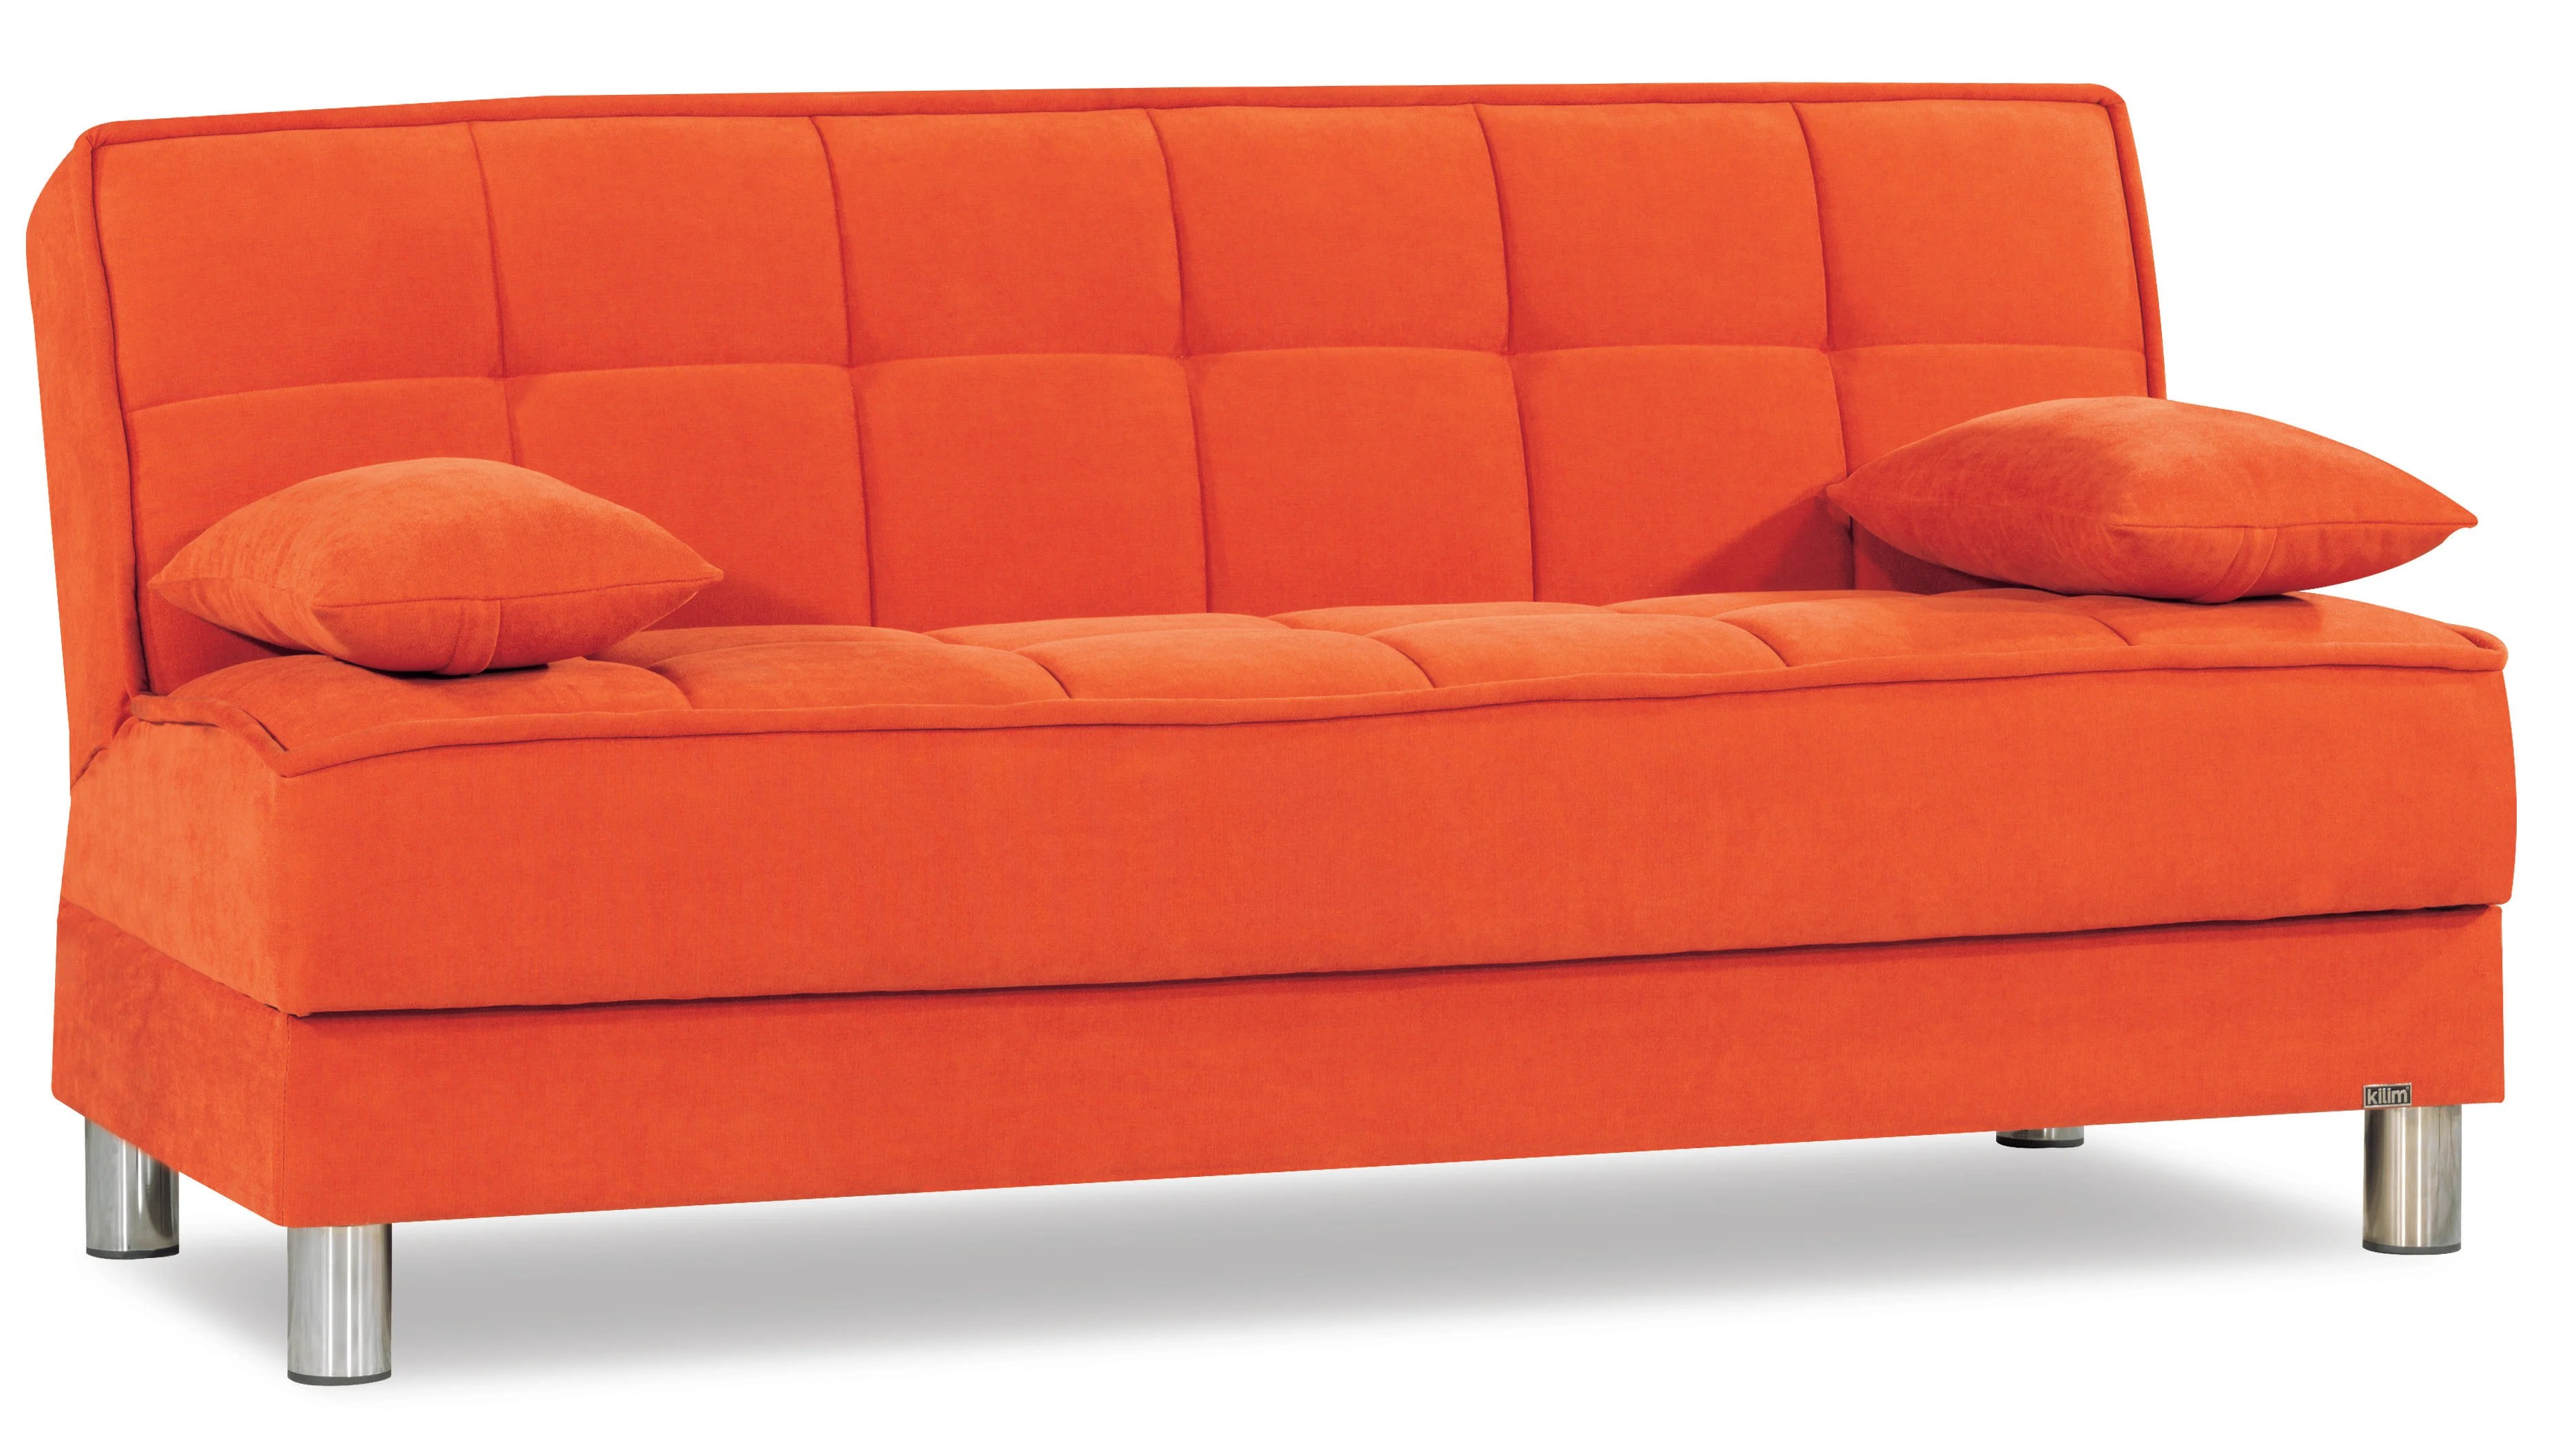 smart sofa designs contemporary convertible fit orange by casamode